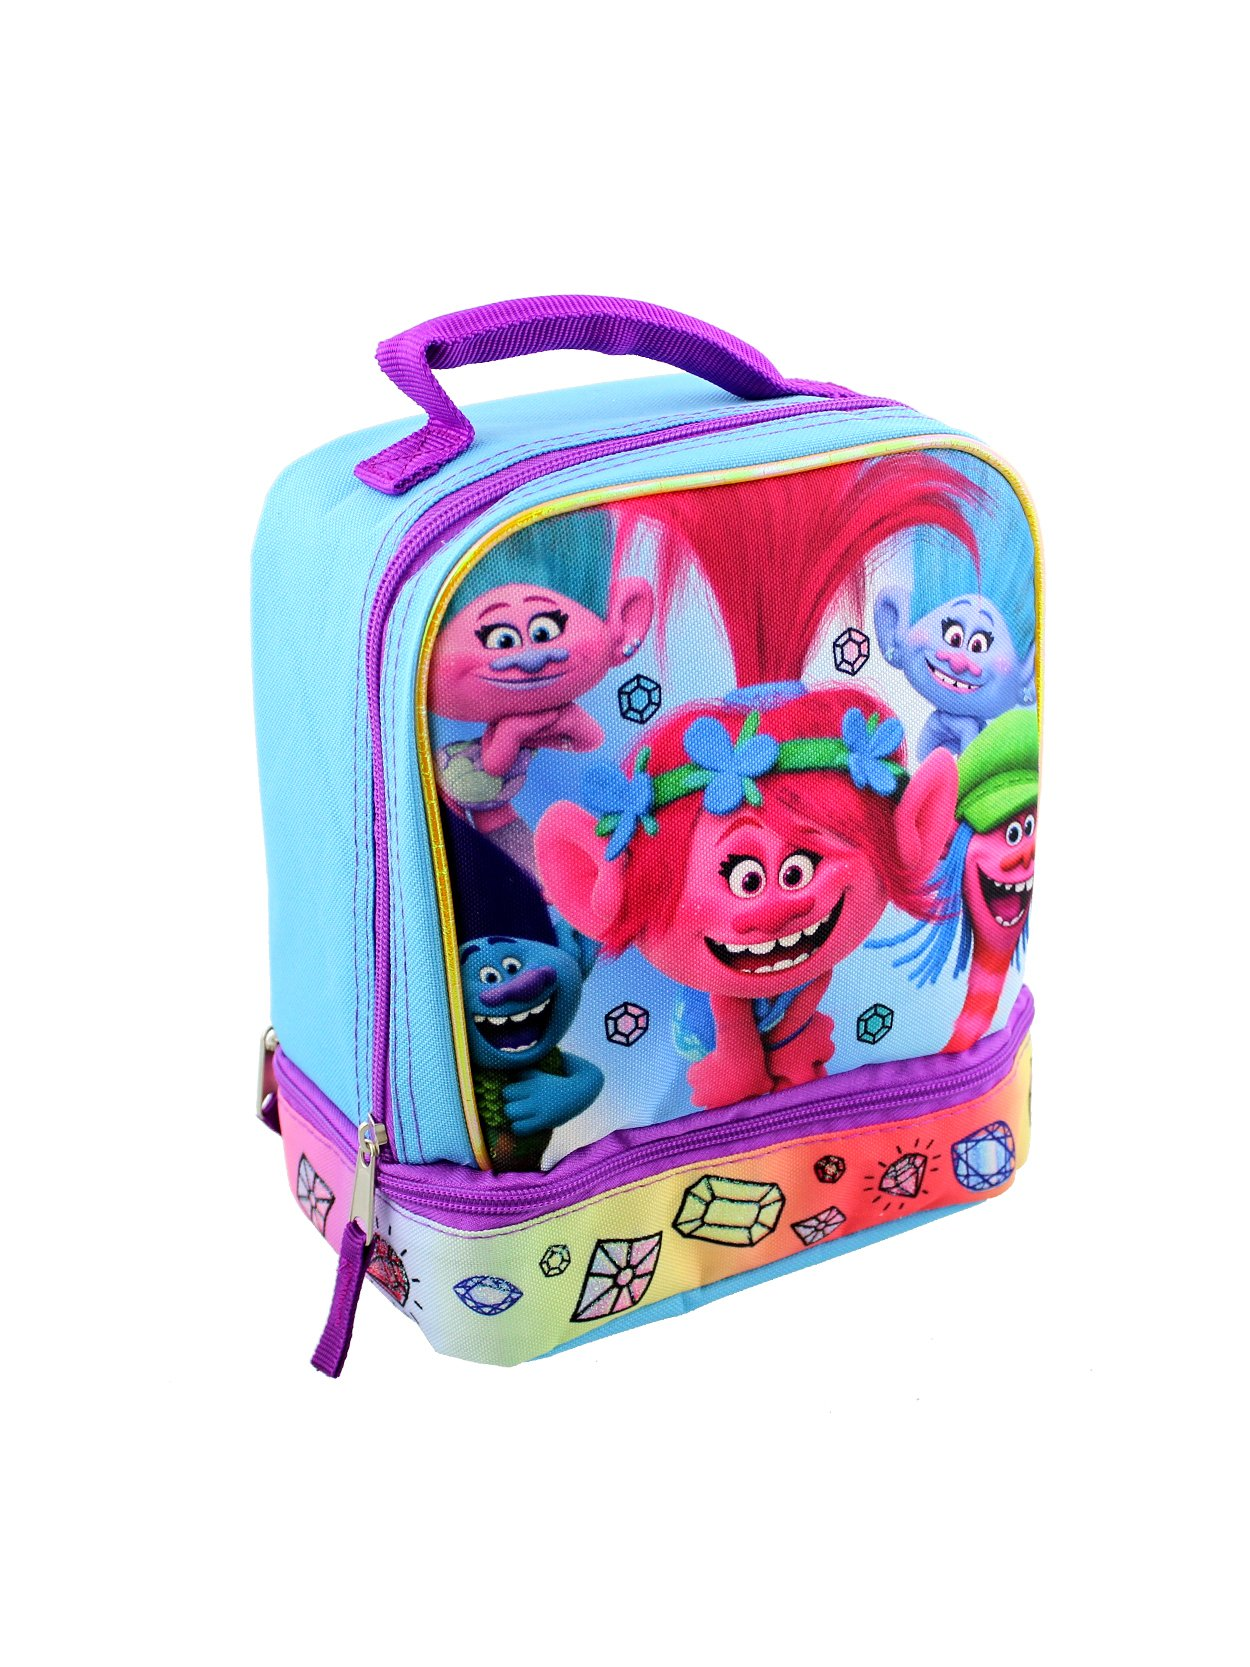 Trolls Dual Compartment Soft Lunch Box (Blue/Pink)